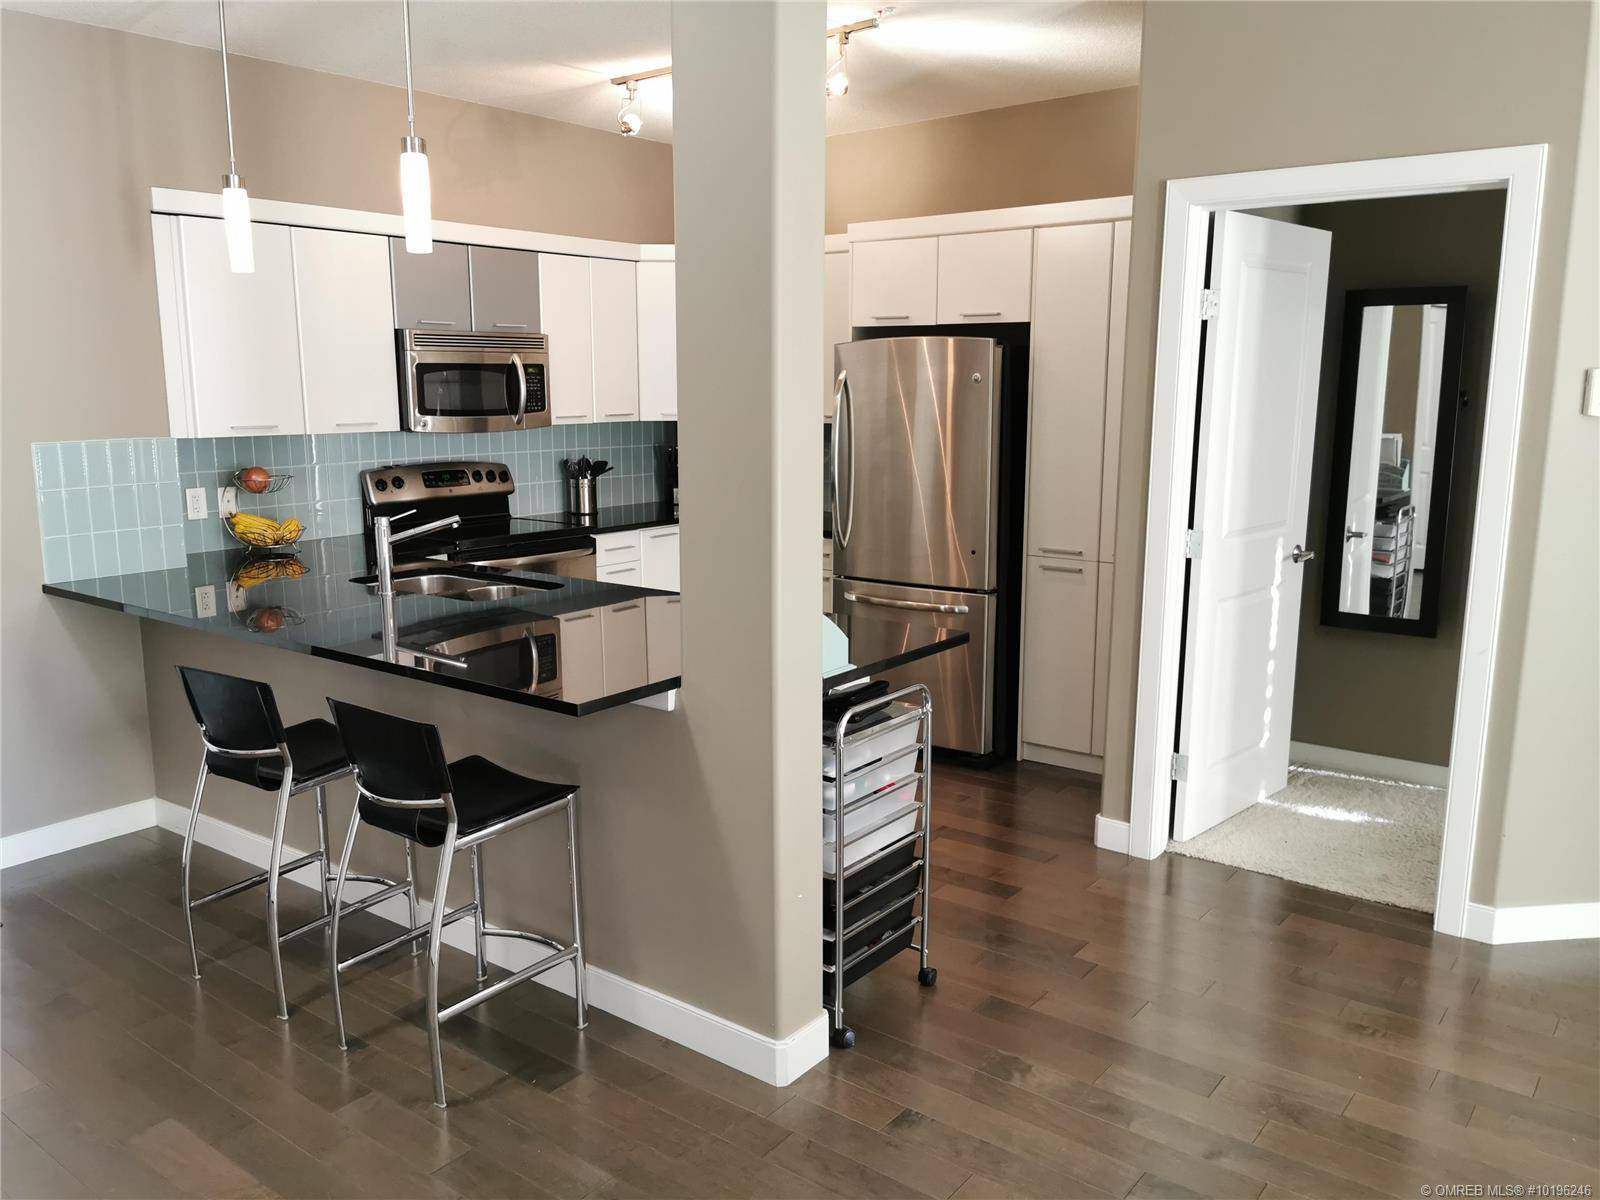 Condo for sale at 3645 Carrington Rd Unit 315 West Kelowna British Columbia - MLS: 10196246